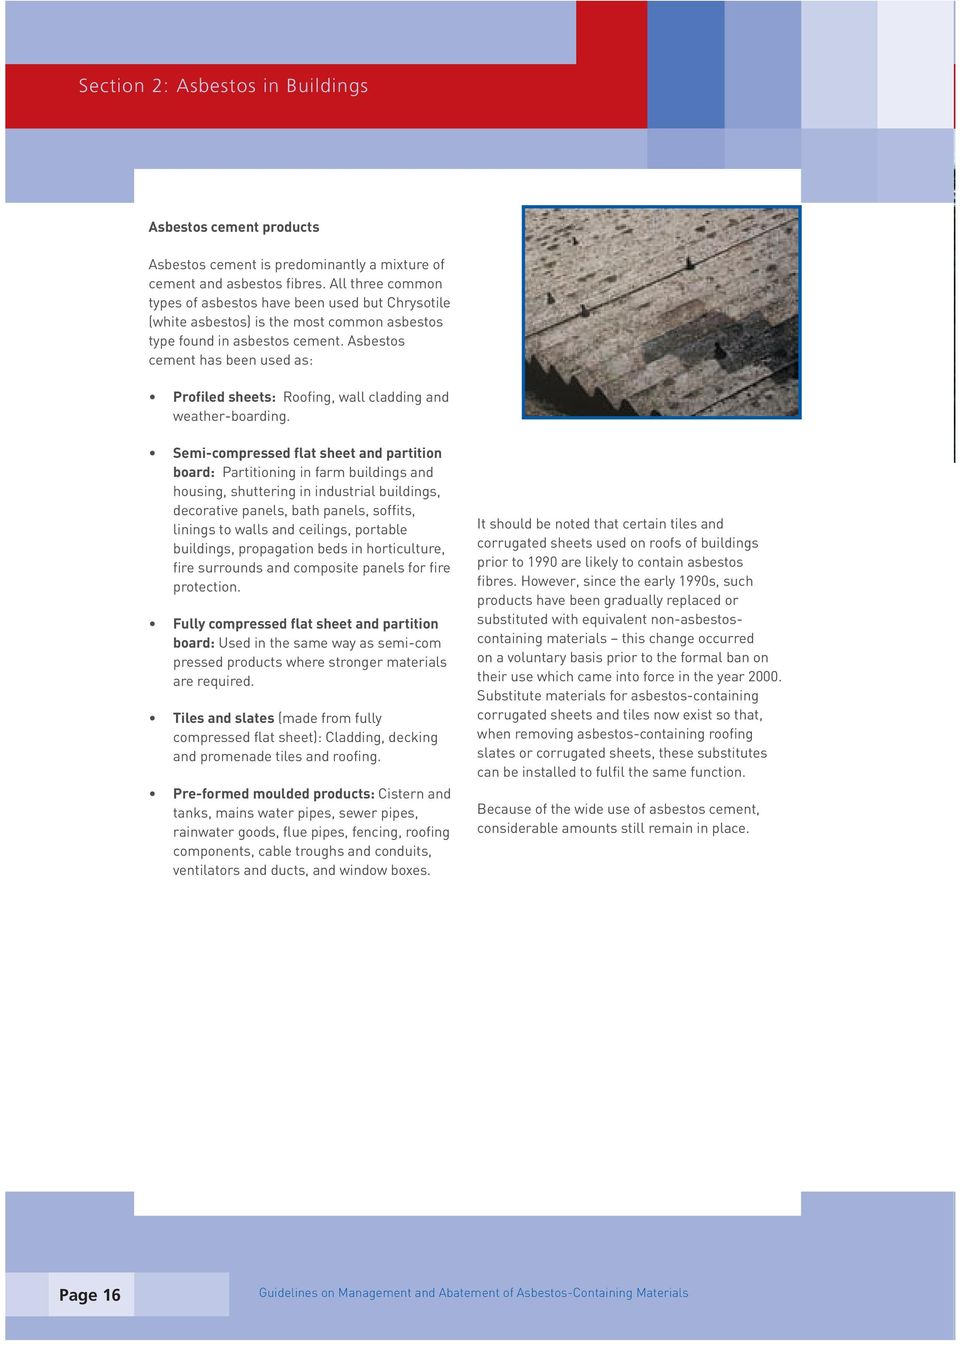 Asbestos cement has been used as: Profiled sheets: Roofing, wall cladding and weather-boarding.